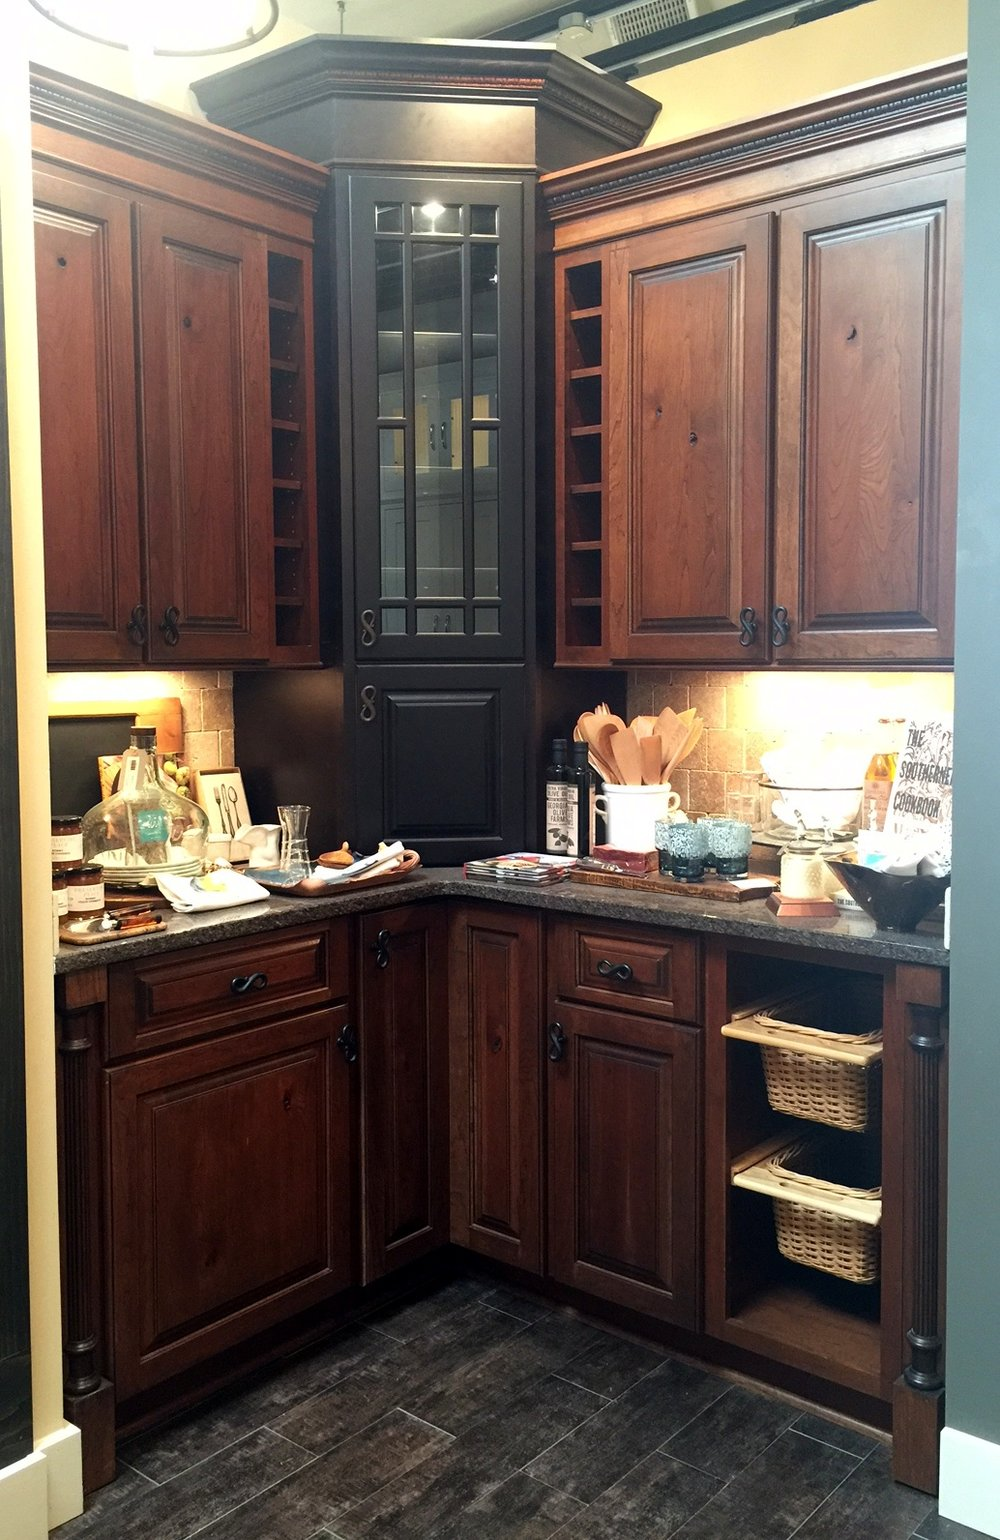 Rustic Cherry Cabinets with Black Maple Tower